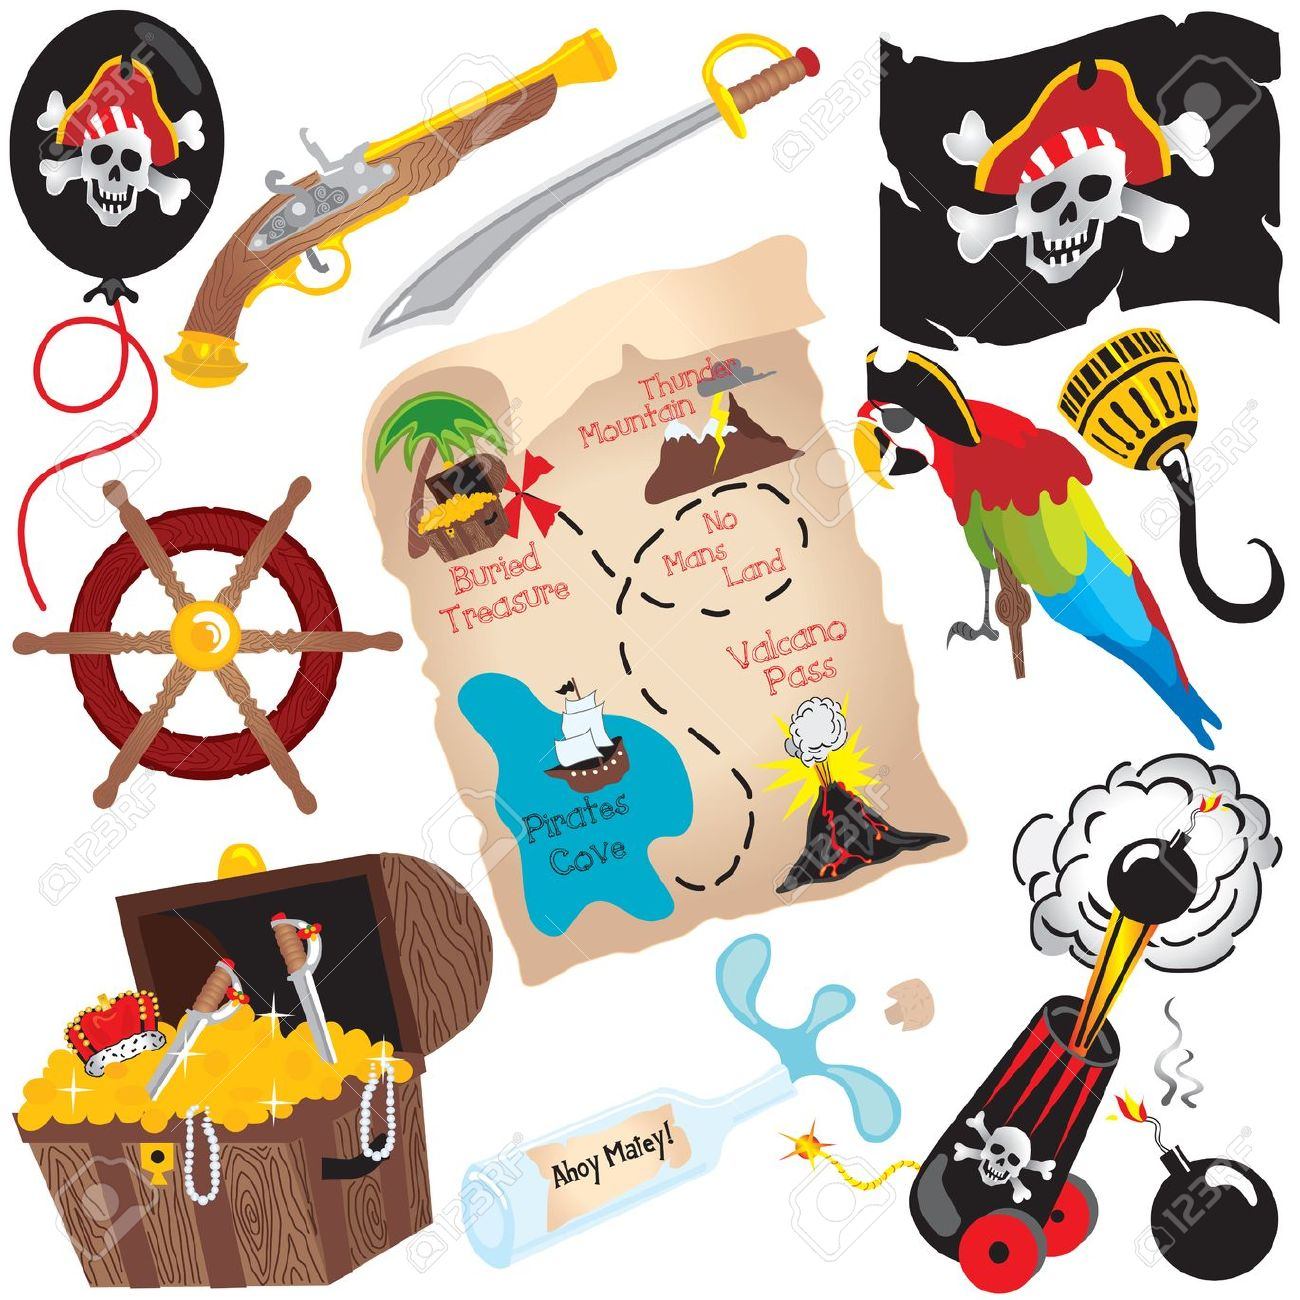 female pirate clipart at getdrawings com free for personal use rh getdrawings com free pirate clip art for children free pirate clip art borders